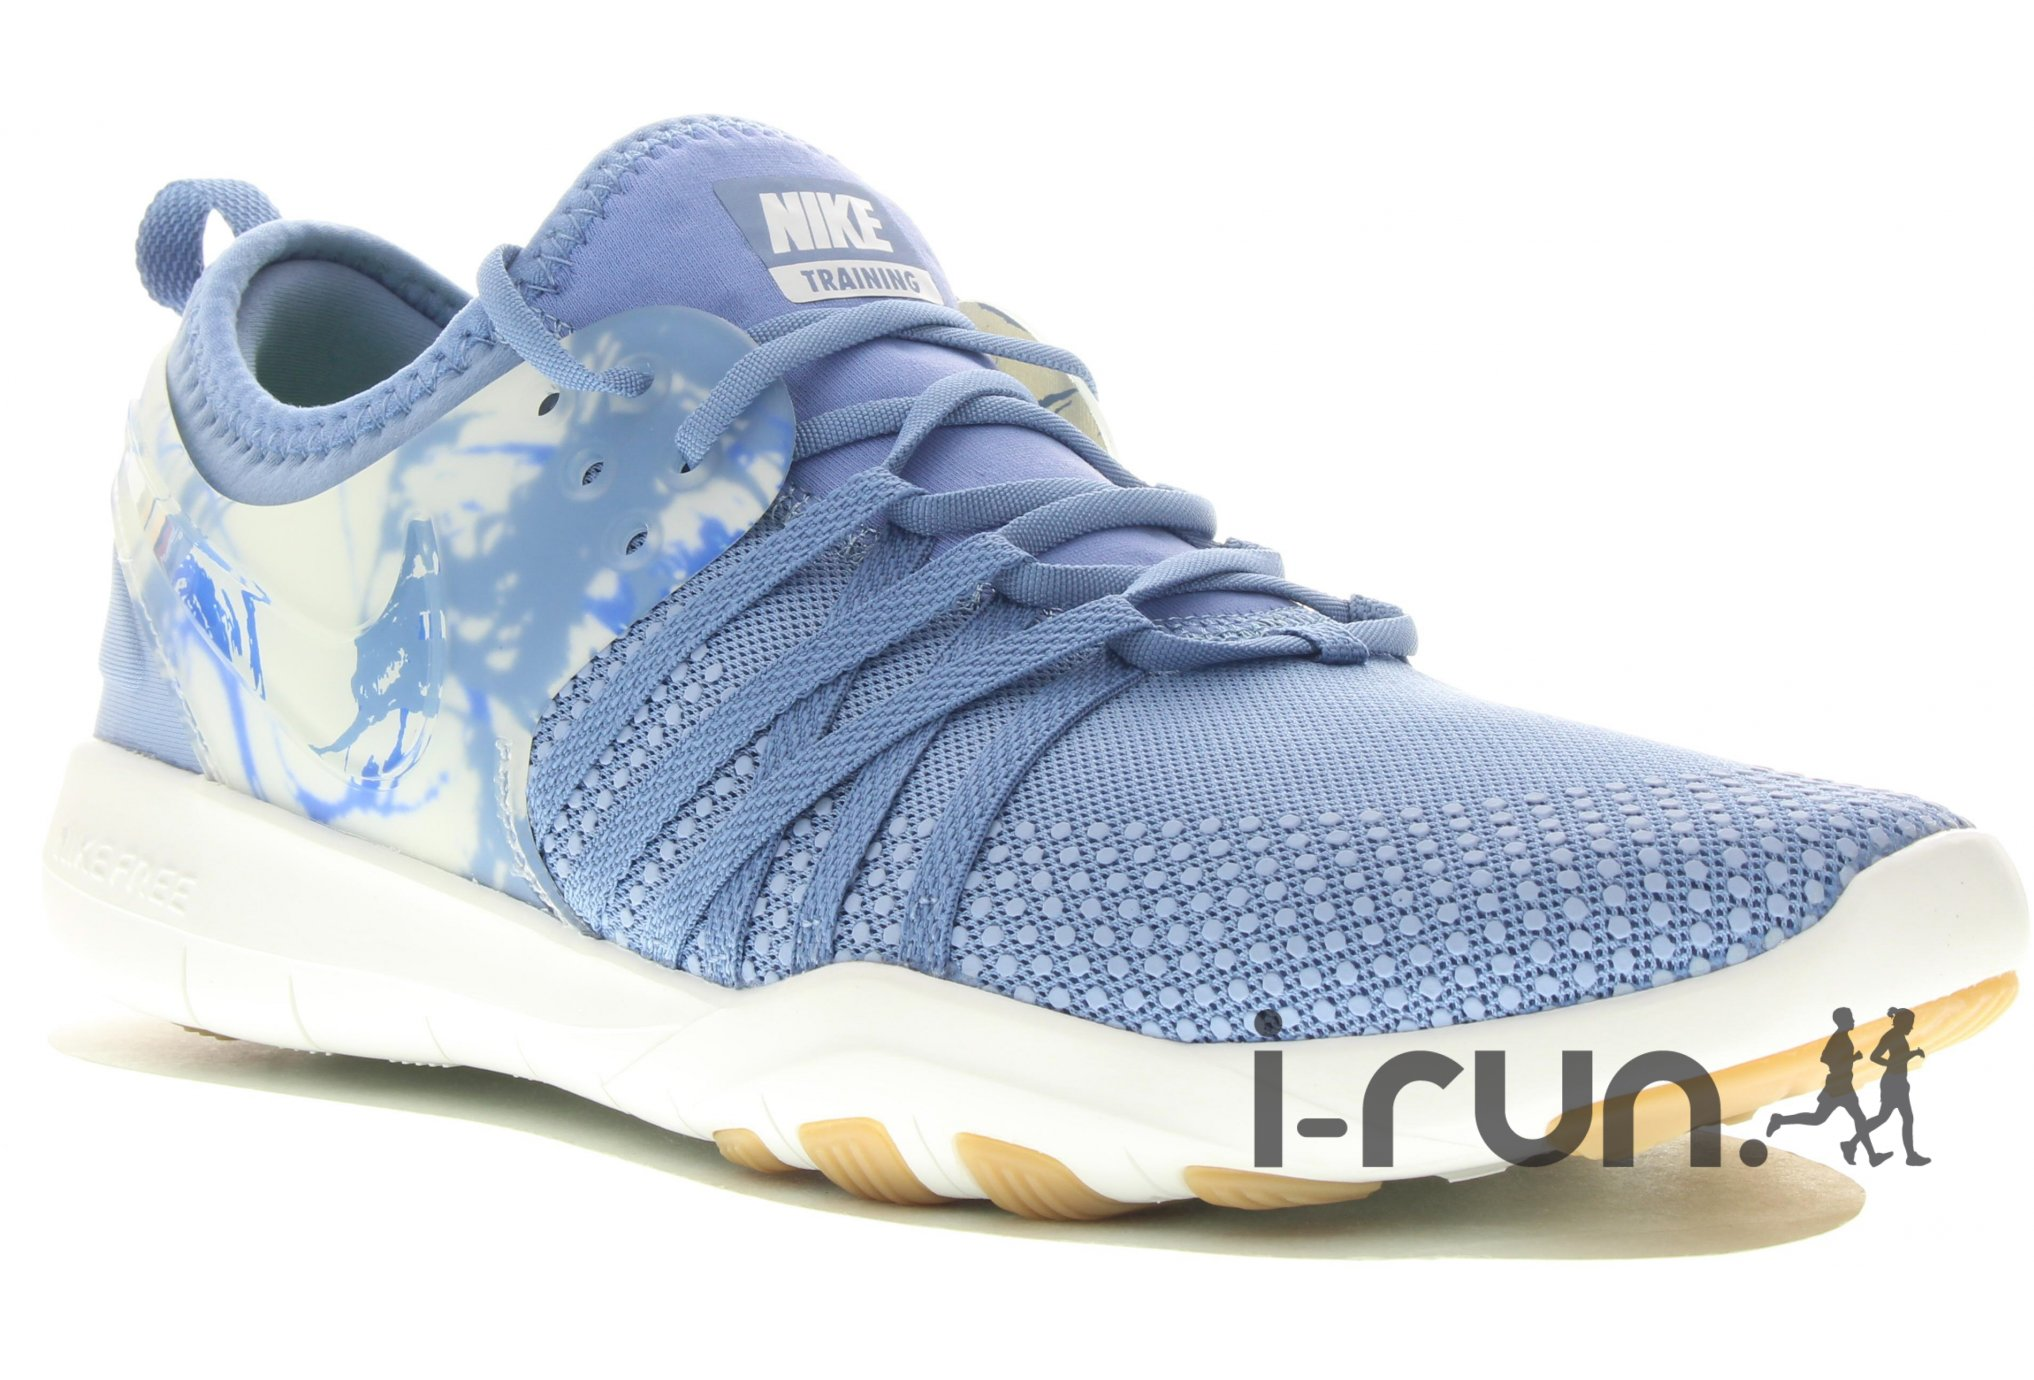 Nike Free TR 7 W Chaussures running femme